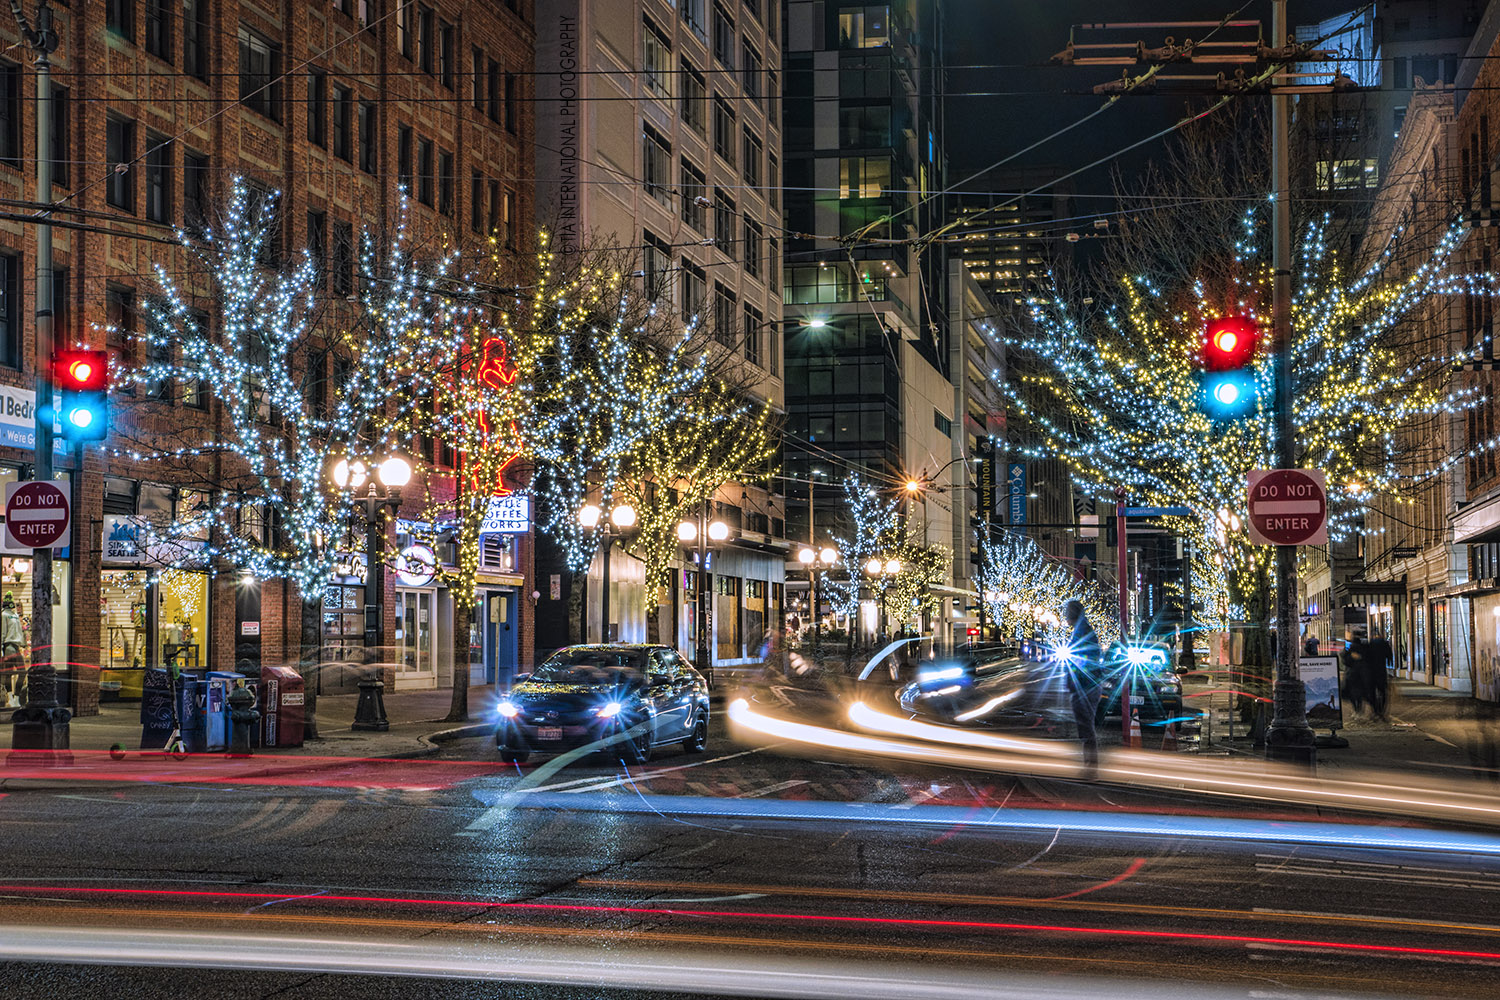 The intersection of First Avenue & Pine Street in downtown Seattle. (December 17, 2020).